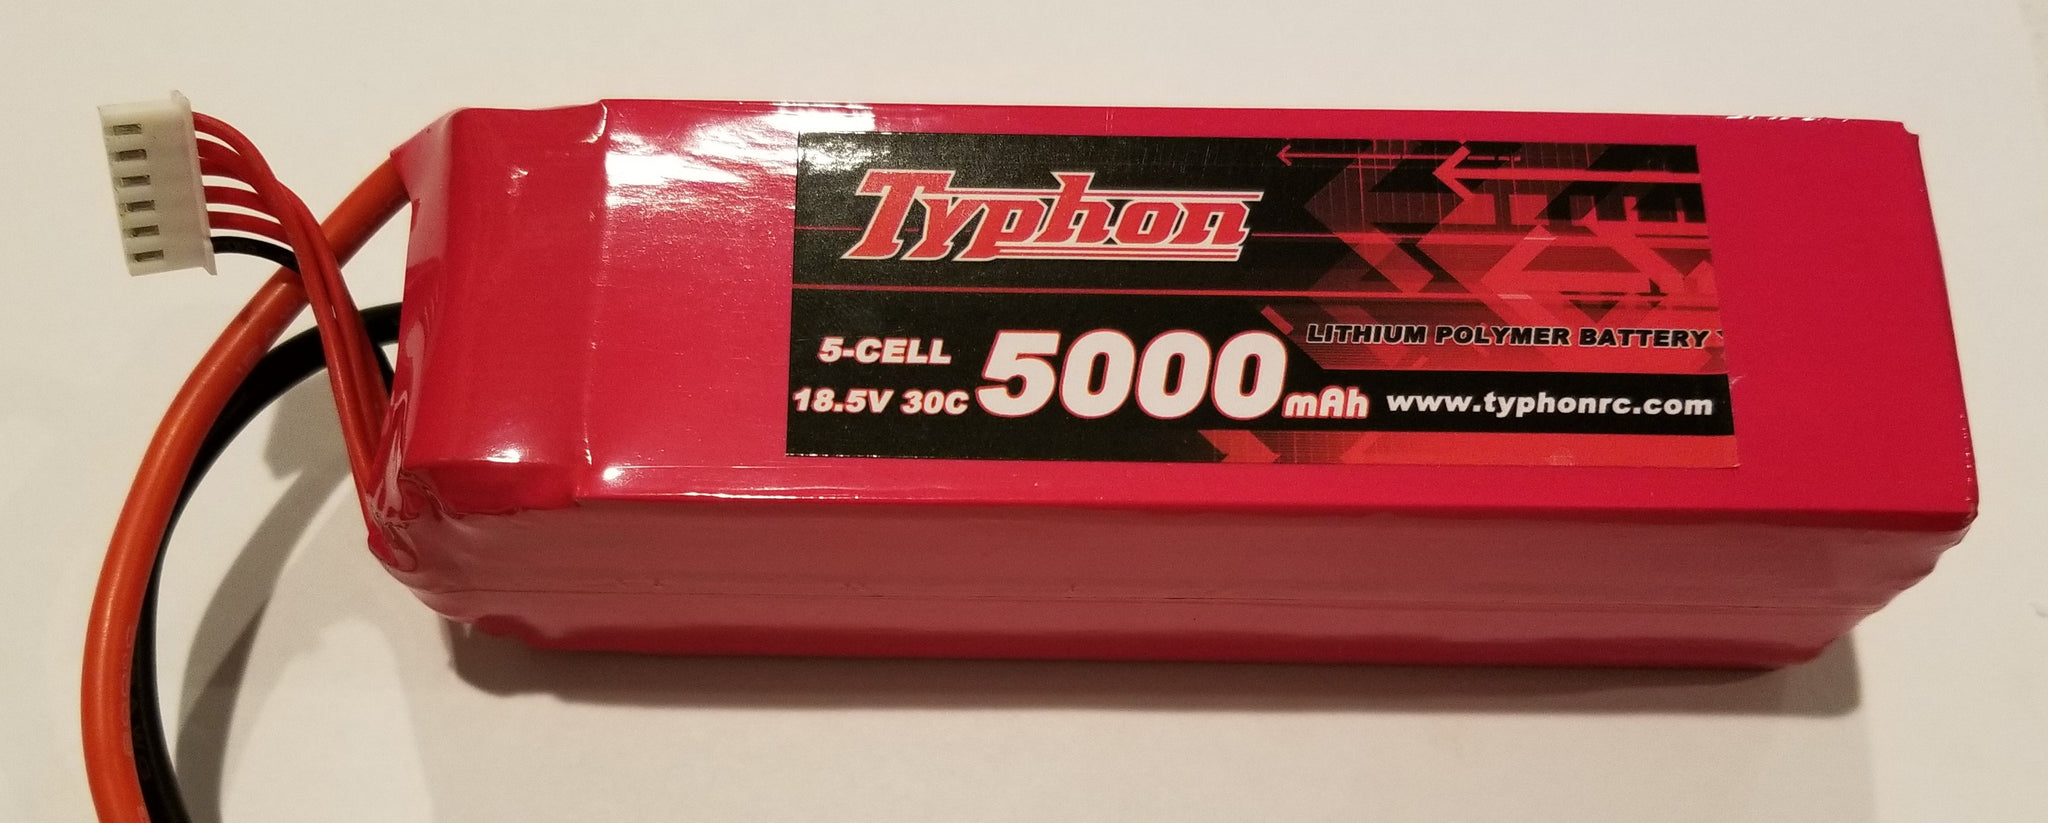 5 Cell 5,000mAh Litium Polymer Battery, 30C 18.5V nominal Typhon Grade A